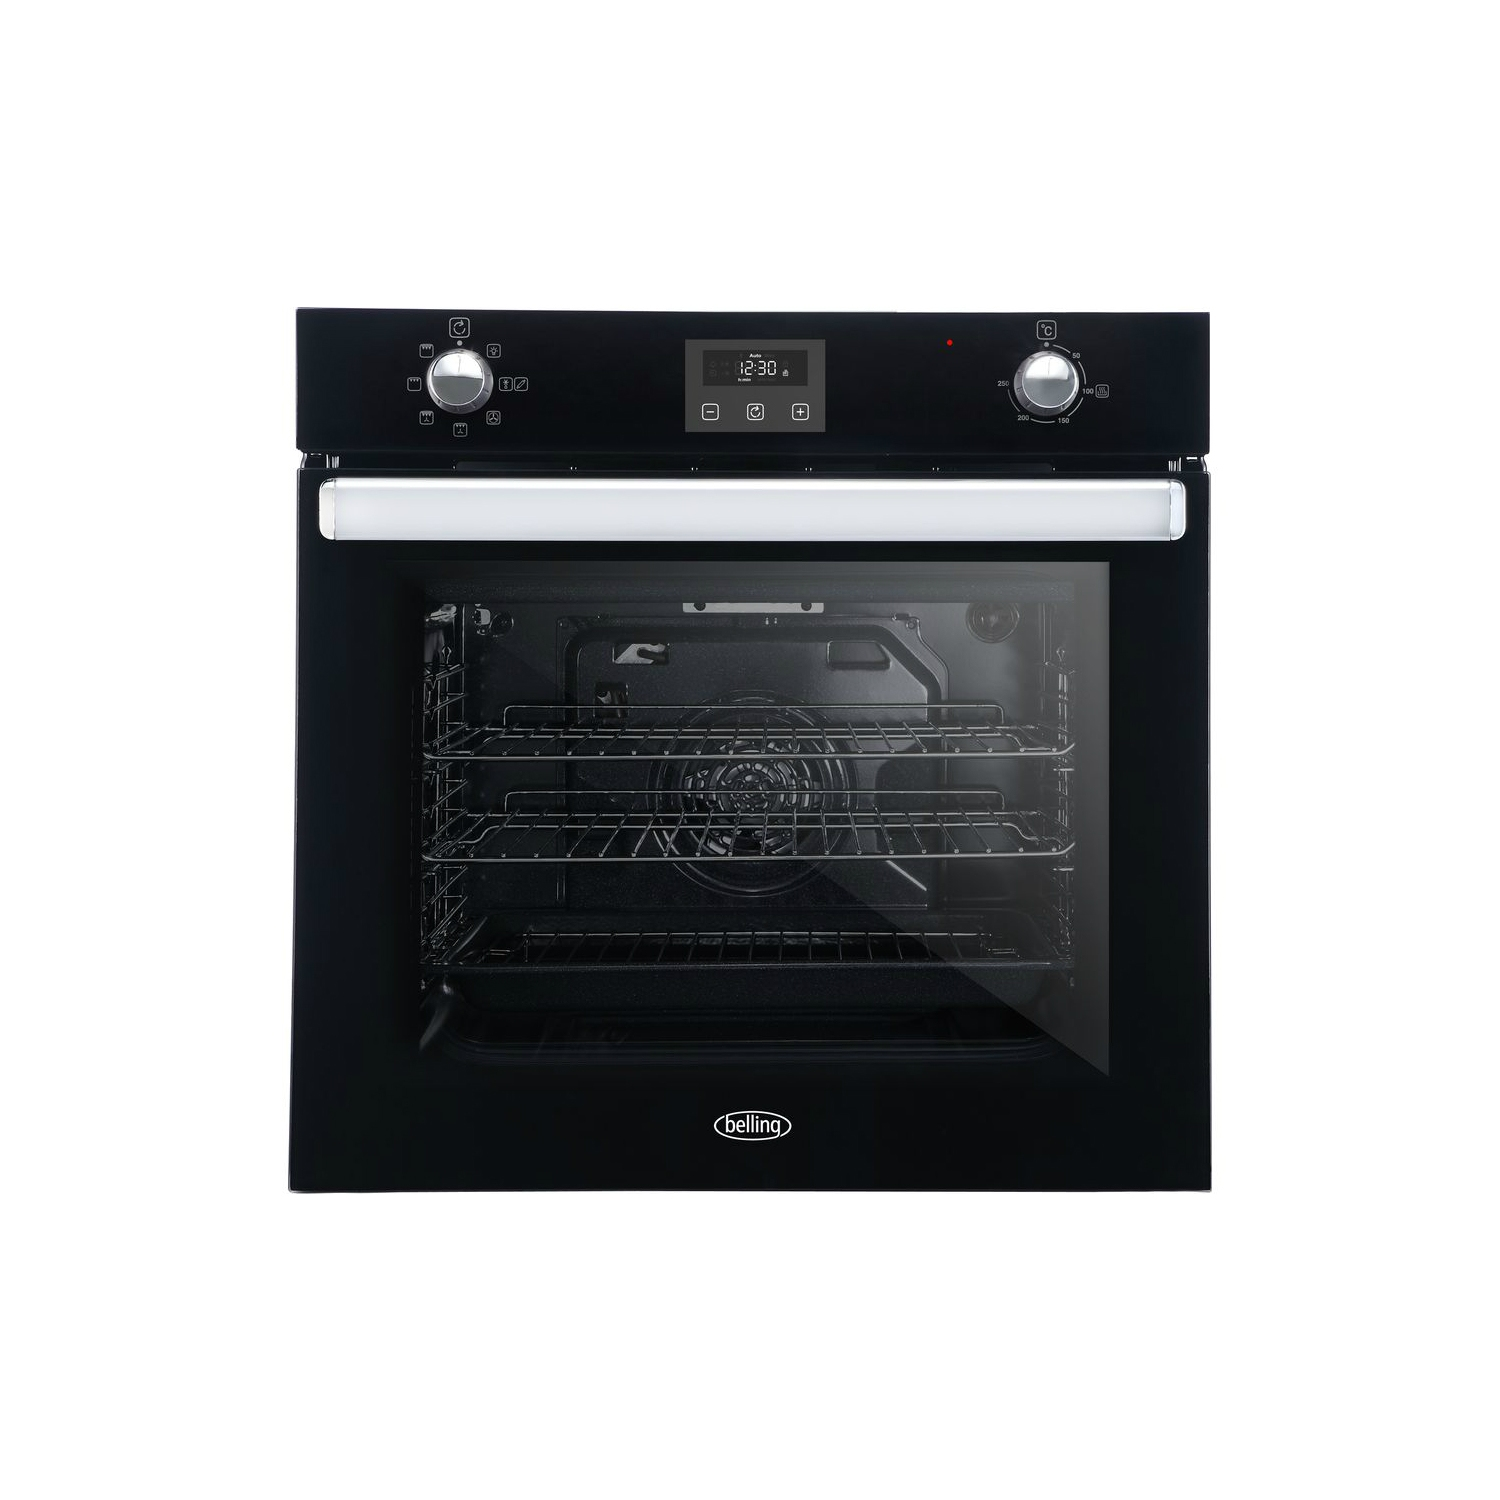 Belling Built In Electric Single Oven - Black - 0